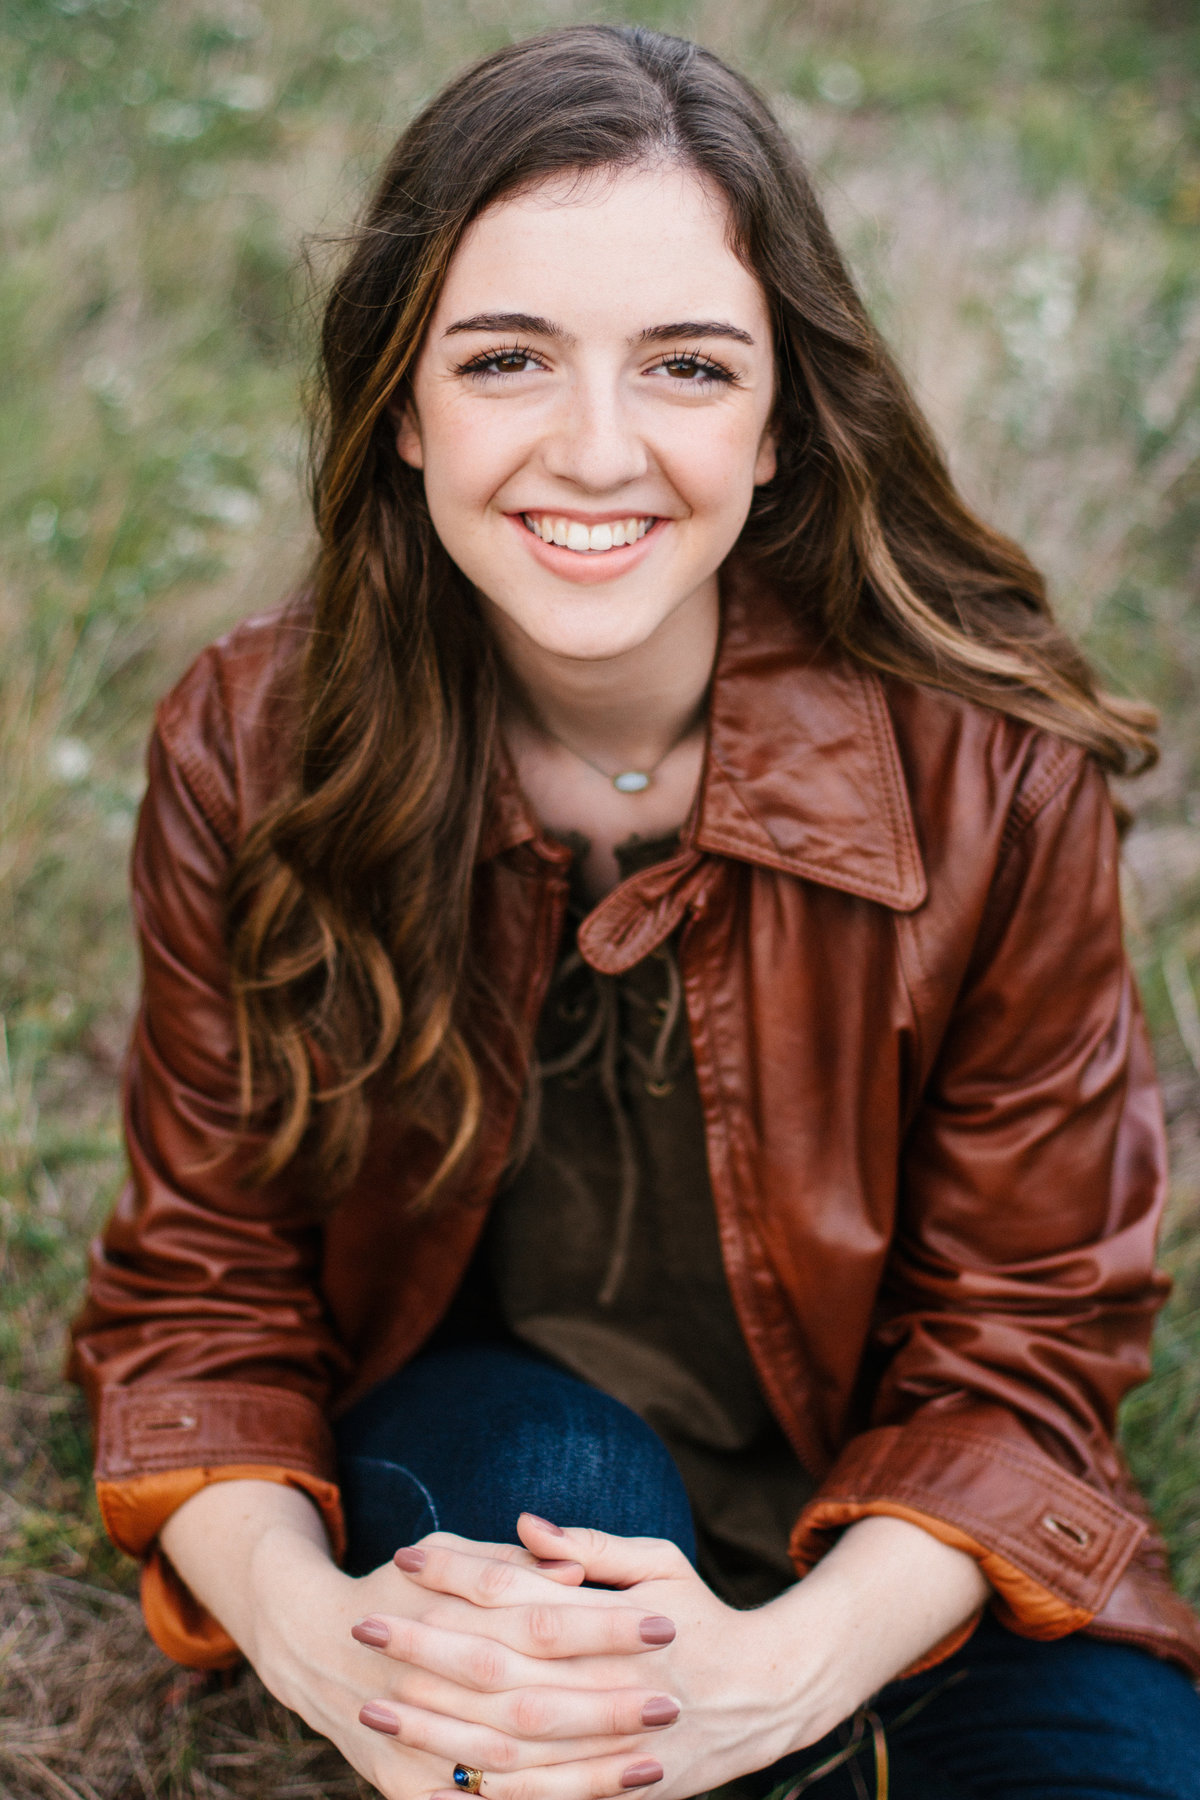 lucas-texas-highschool-senior-girl